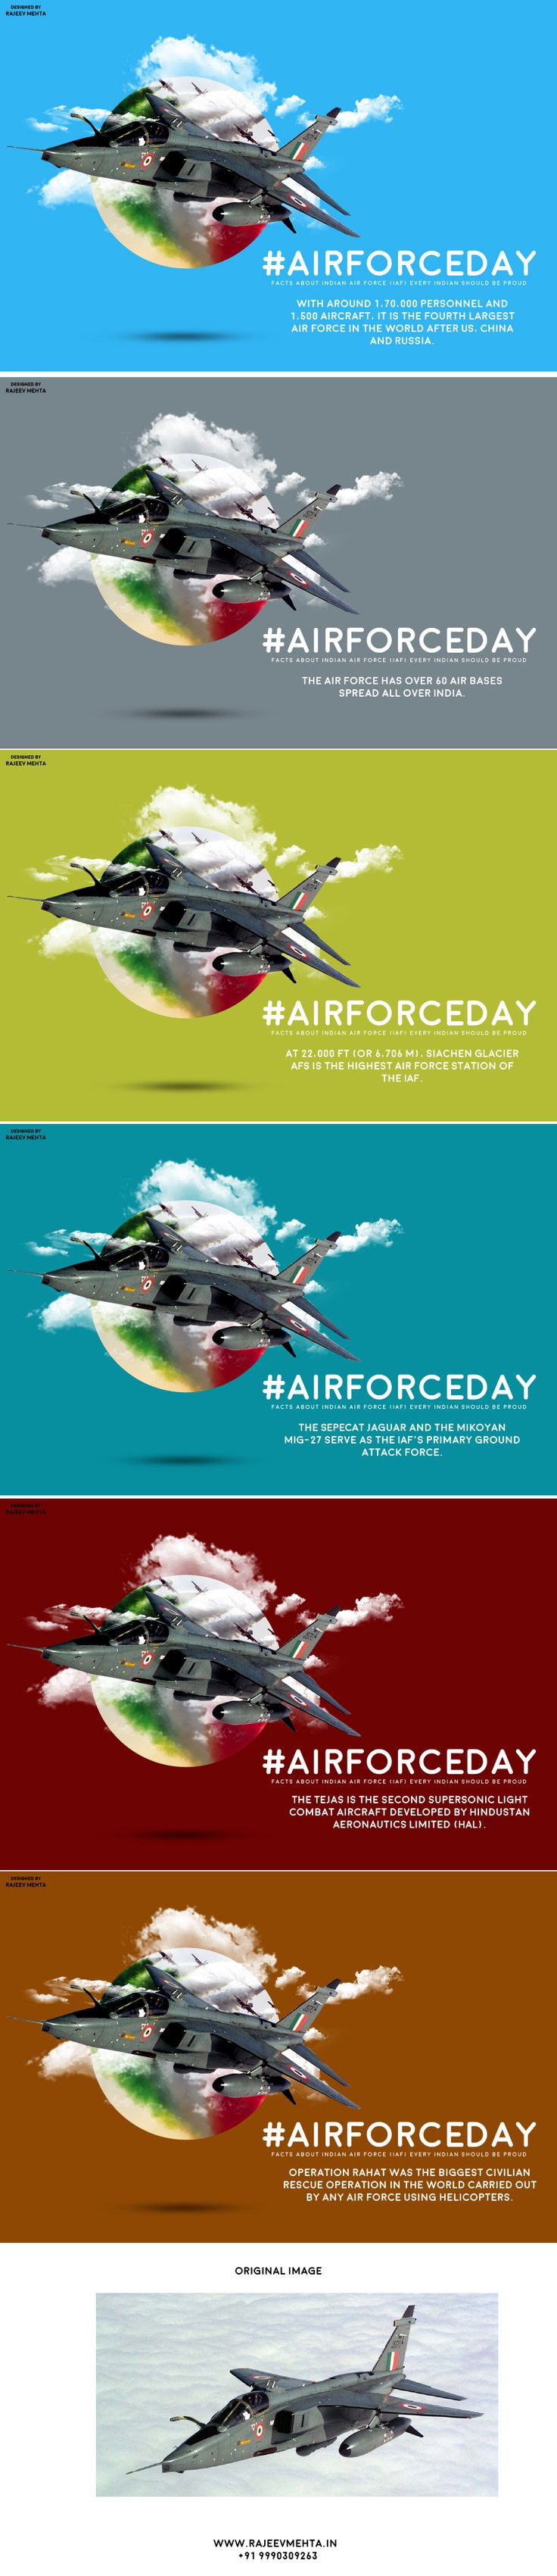 #AirForceDay : 6 Graphics that define greatness of Indian Air Force. Designed by GFX Designer & Social Media Graphic Designer Rajeev Mehta .